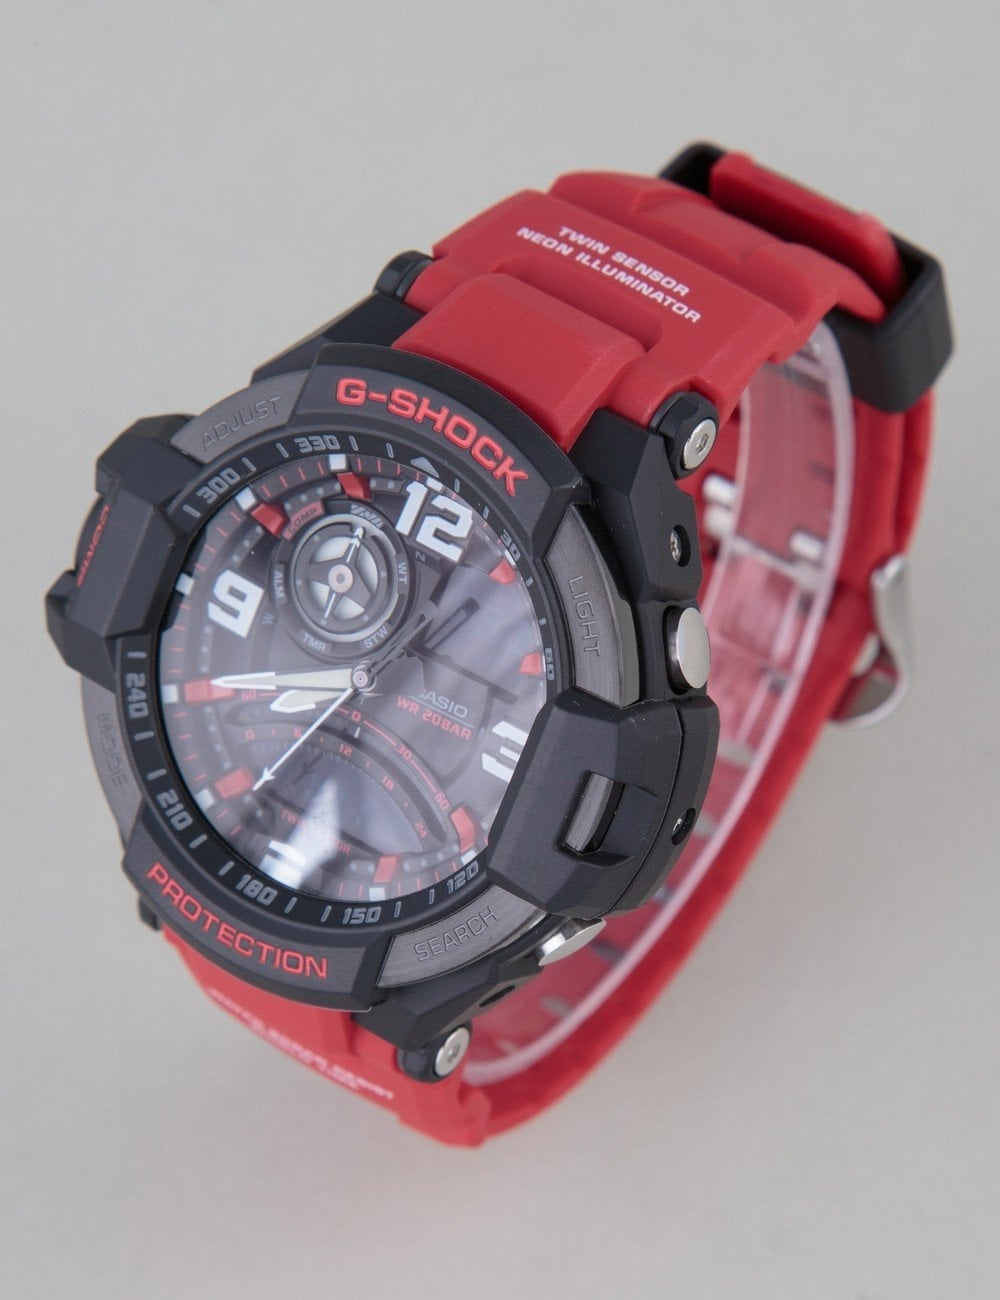 572d29730ef68 G-Shock GA1000-4B Watch - Red - Accessories from Fat Buddha Store UK